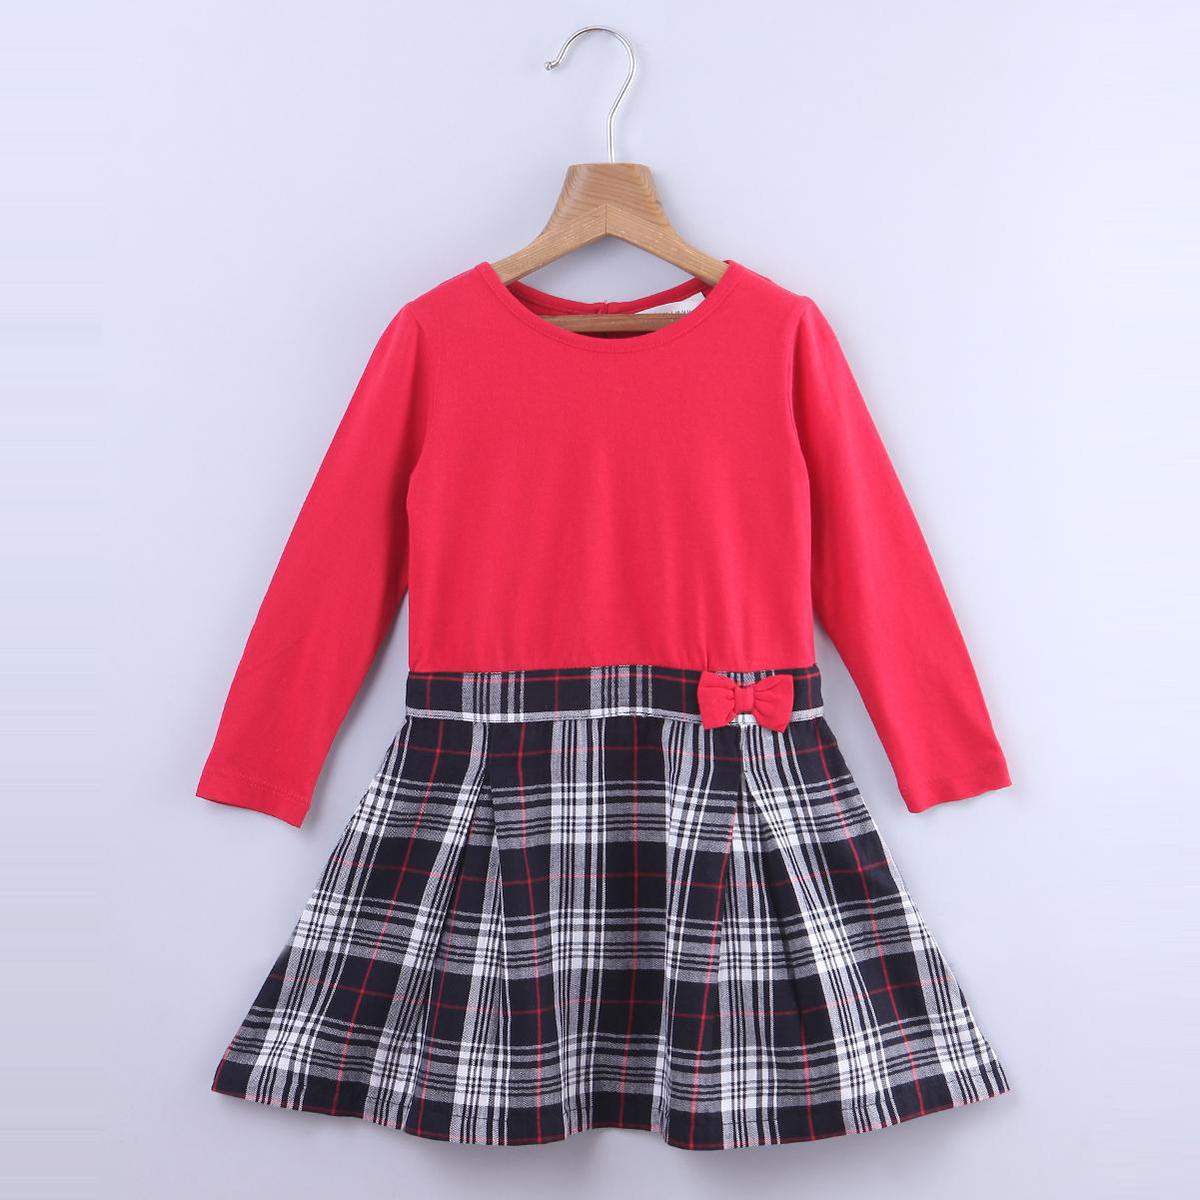 Beebay - Red Colored Pleated Mix-media Cotton Dress For Infants Girls